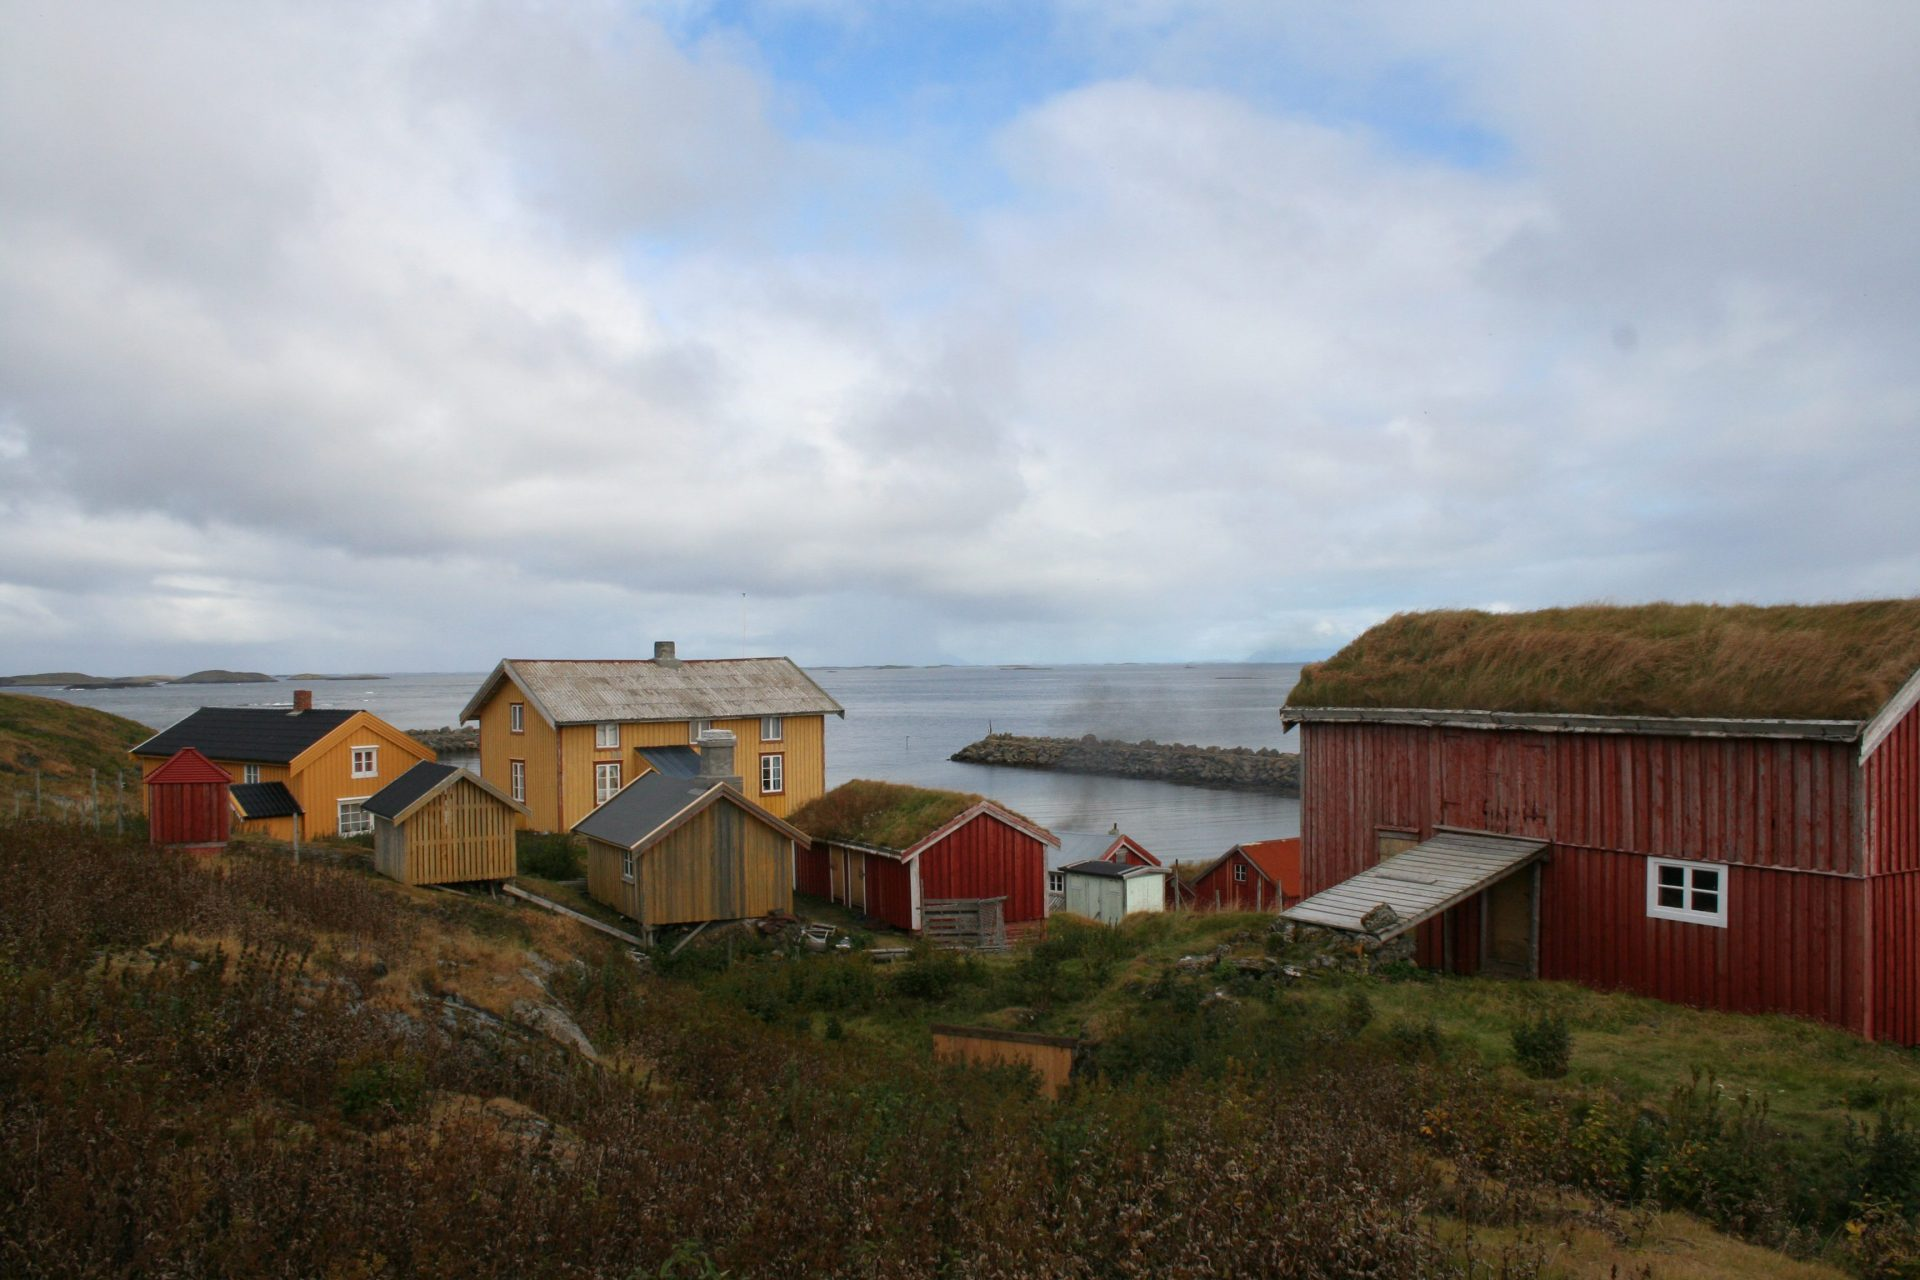 Picture from the Skjærvær in the Vega Archipelago off the Helgeland coast in the Norwegian region of Nordland. The area has been a centre for fishing and hunting for the last ten thousand years. Harvesting eggs and down from the wild eiders has been an important source of income here since the Middle Ages. The Vega Archipelago is on UNESCO's World Heritage List. Photo by Jon Brænne, NIKU